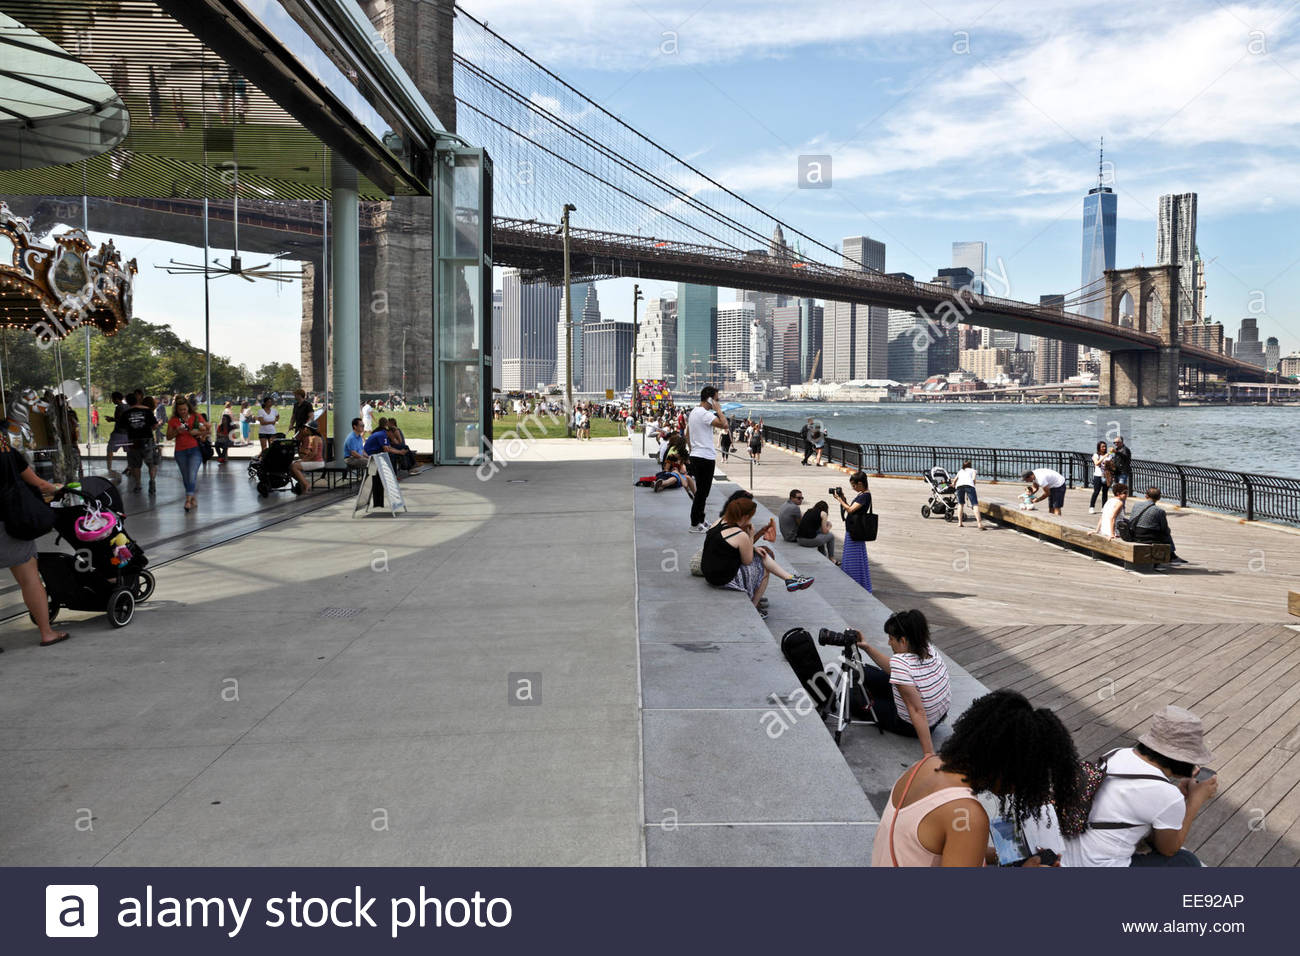 Empire Fulton Ferry park in DUMBO with Jane's carousel and view on downtown Manhattan and the Brooklyn Bridge - Stock Image